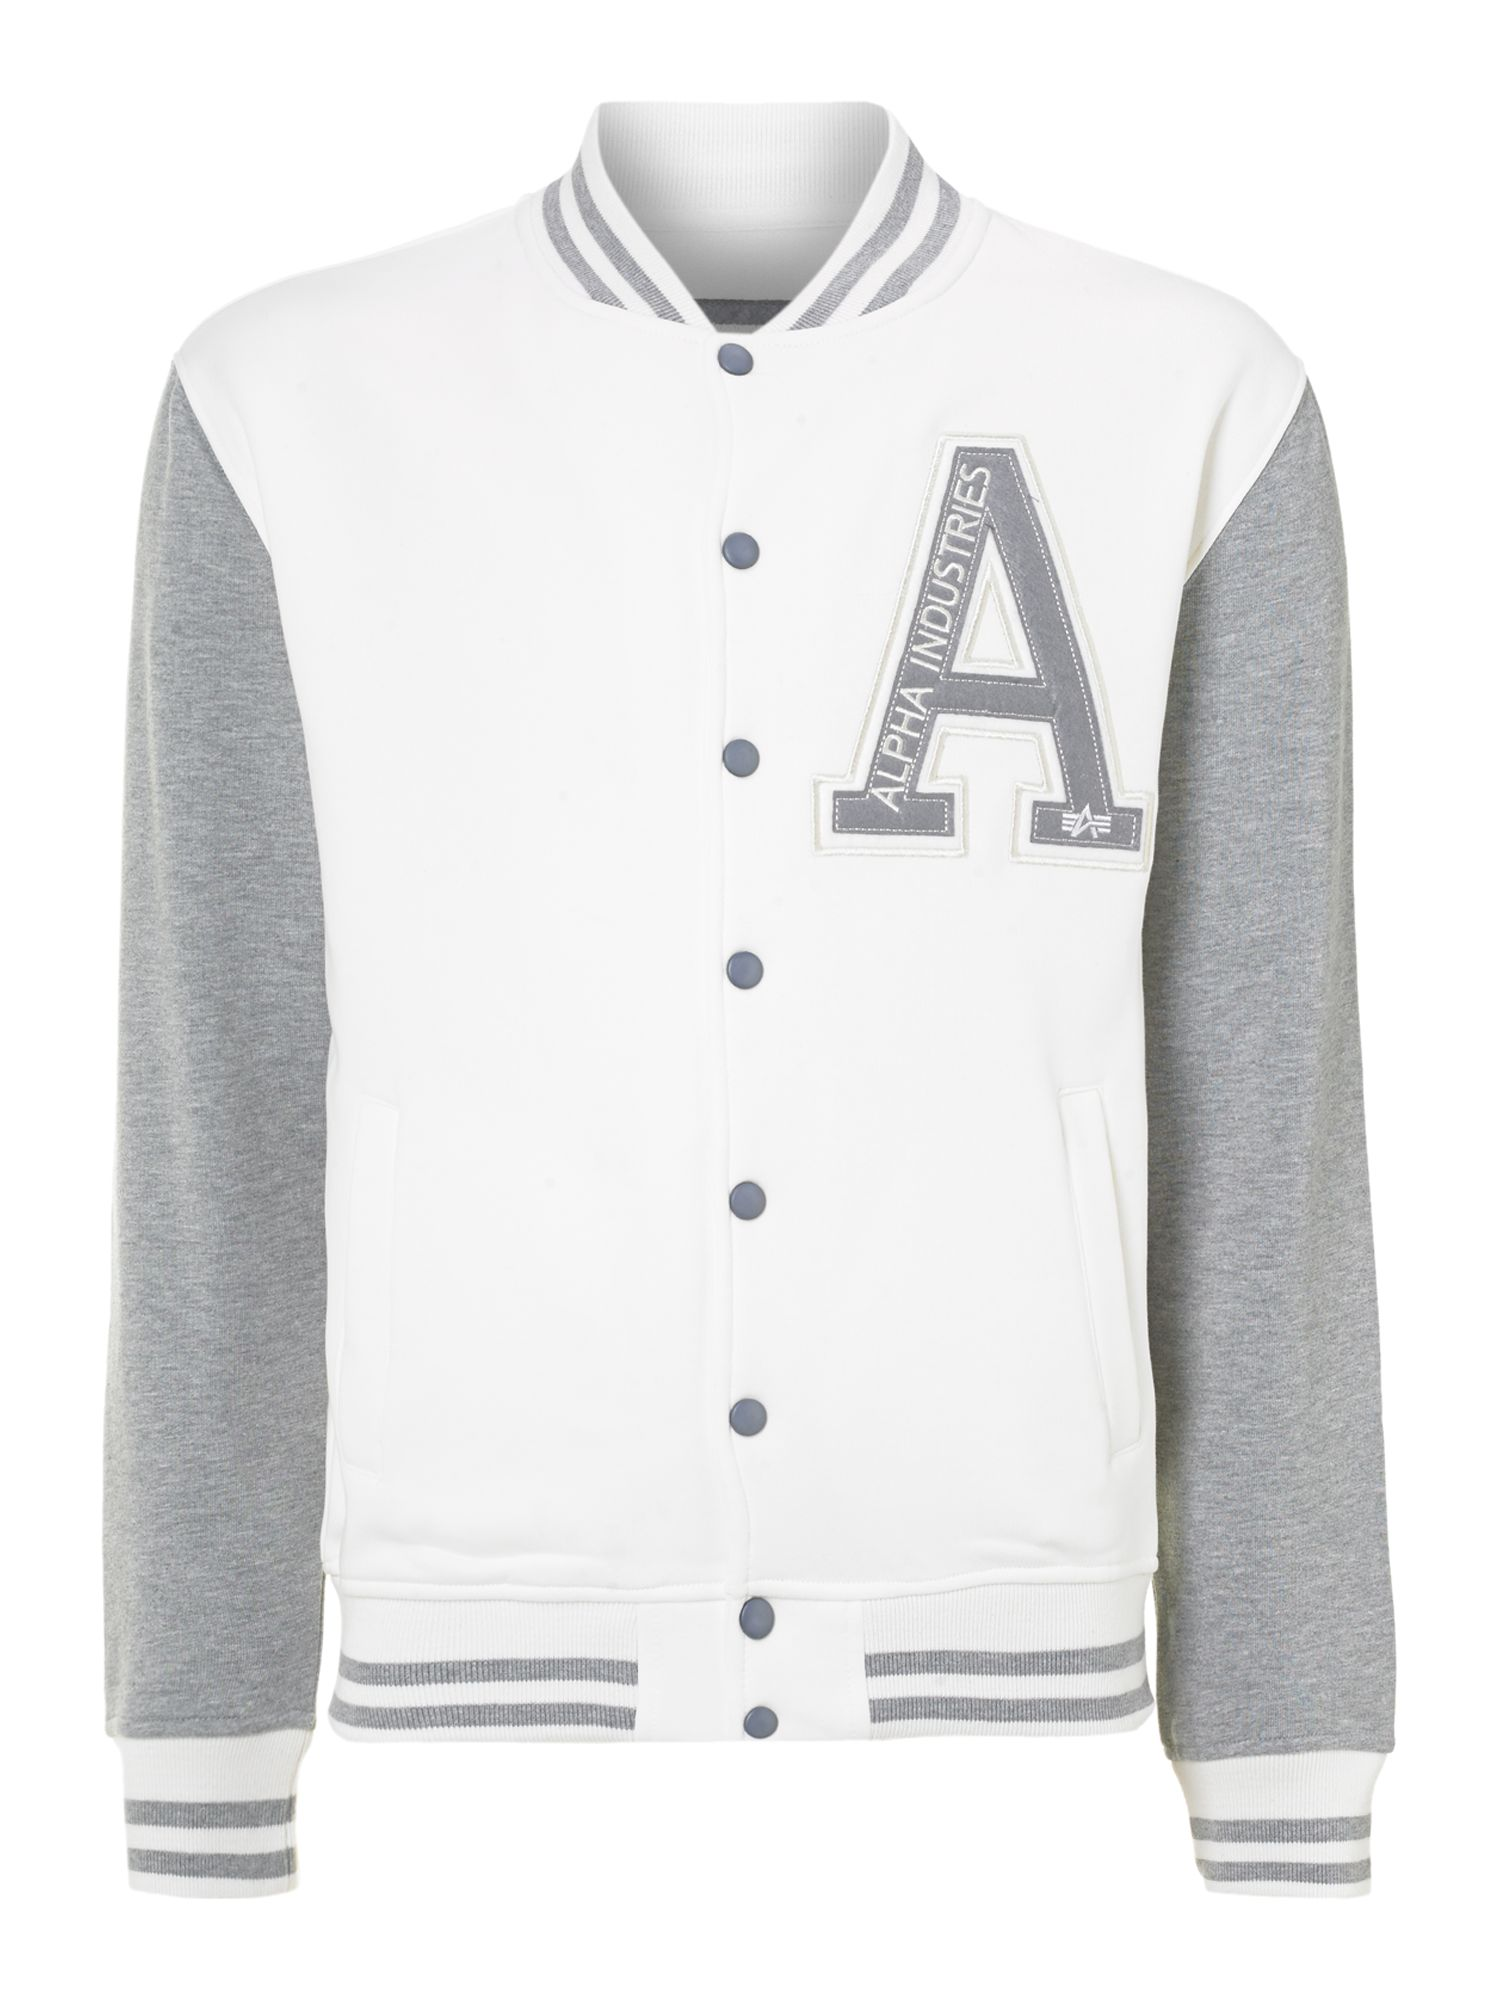 Academy baseball jacket